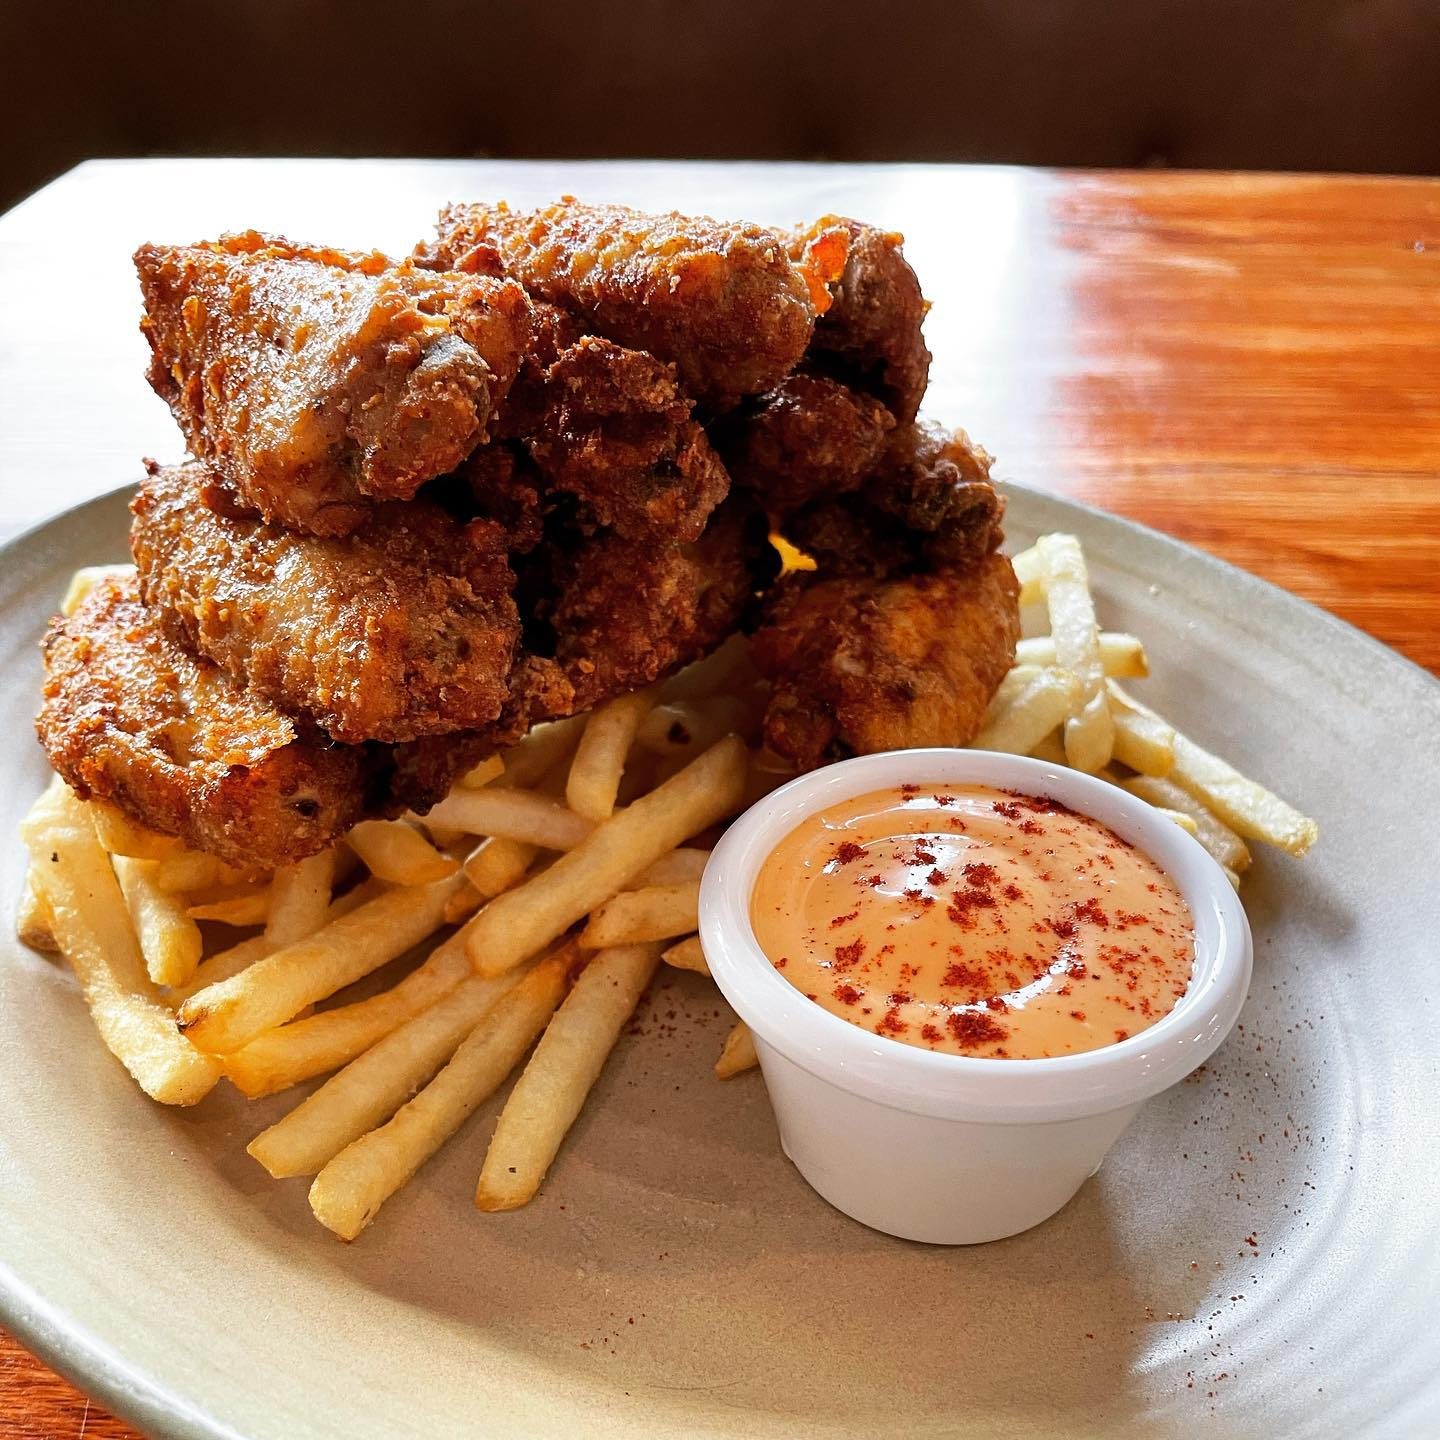 Ed's Hastings fried chicken wings and fries